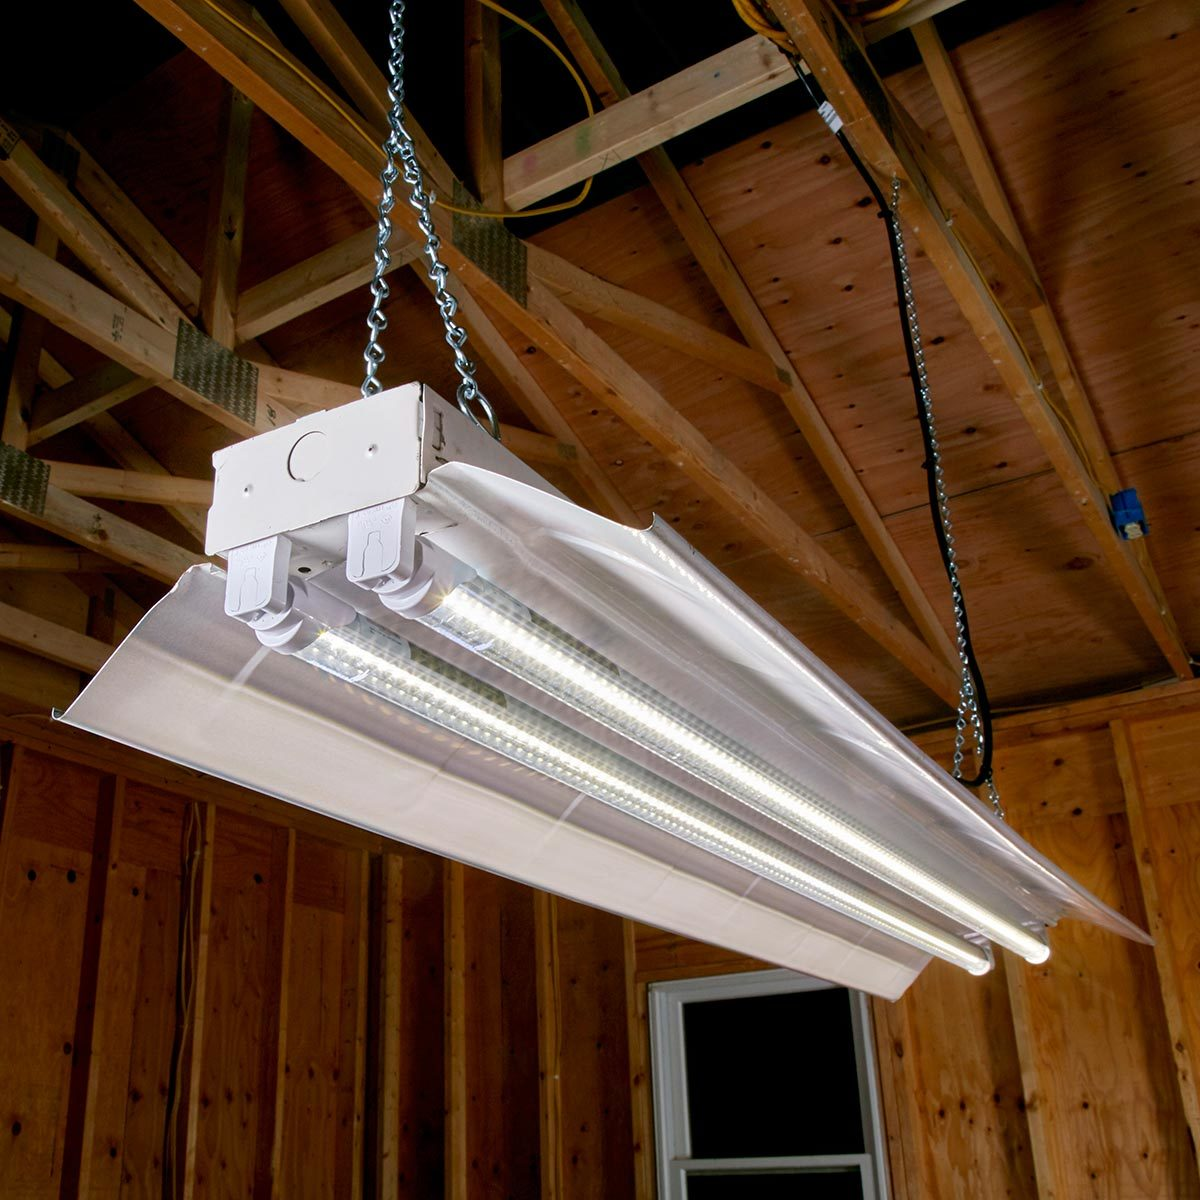 hight resolution of traditional fluorescent shop light fixtures are designed to accommodate 4 ft fluorescent tubes which compared to incandescent bulbs provided longer